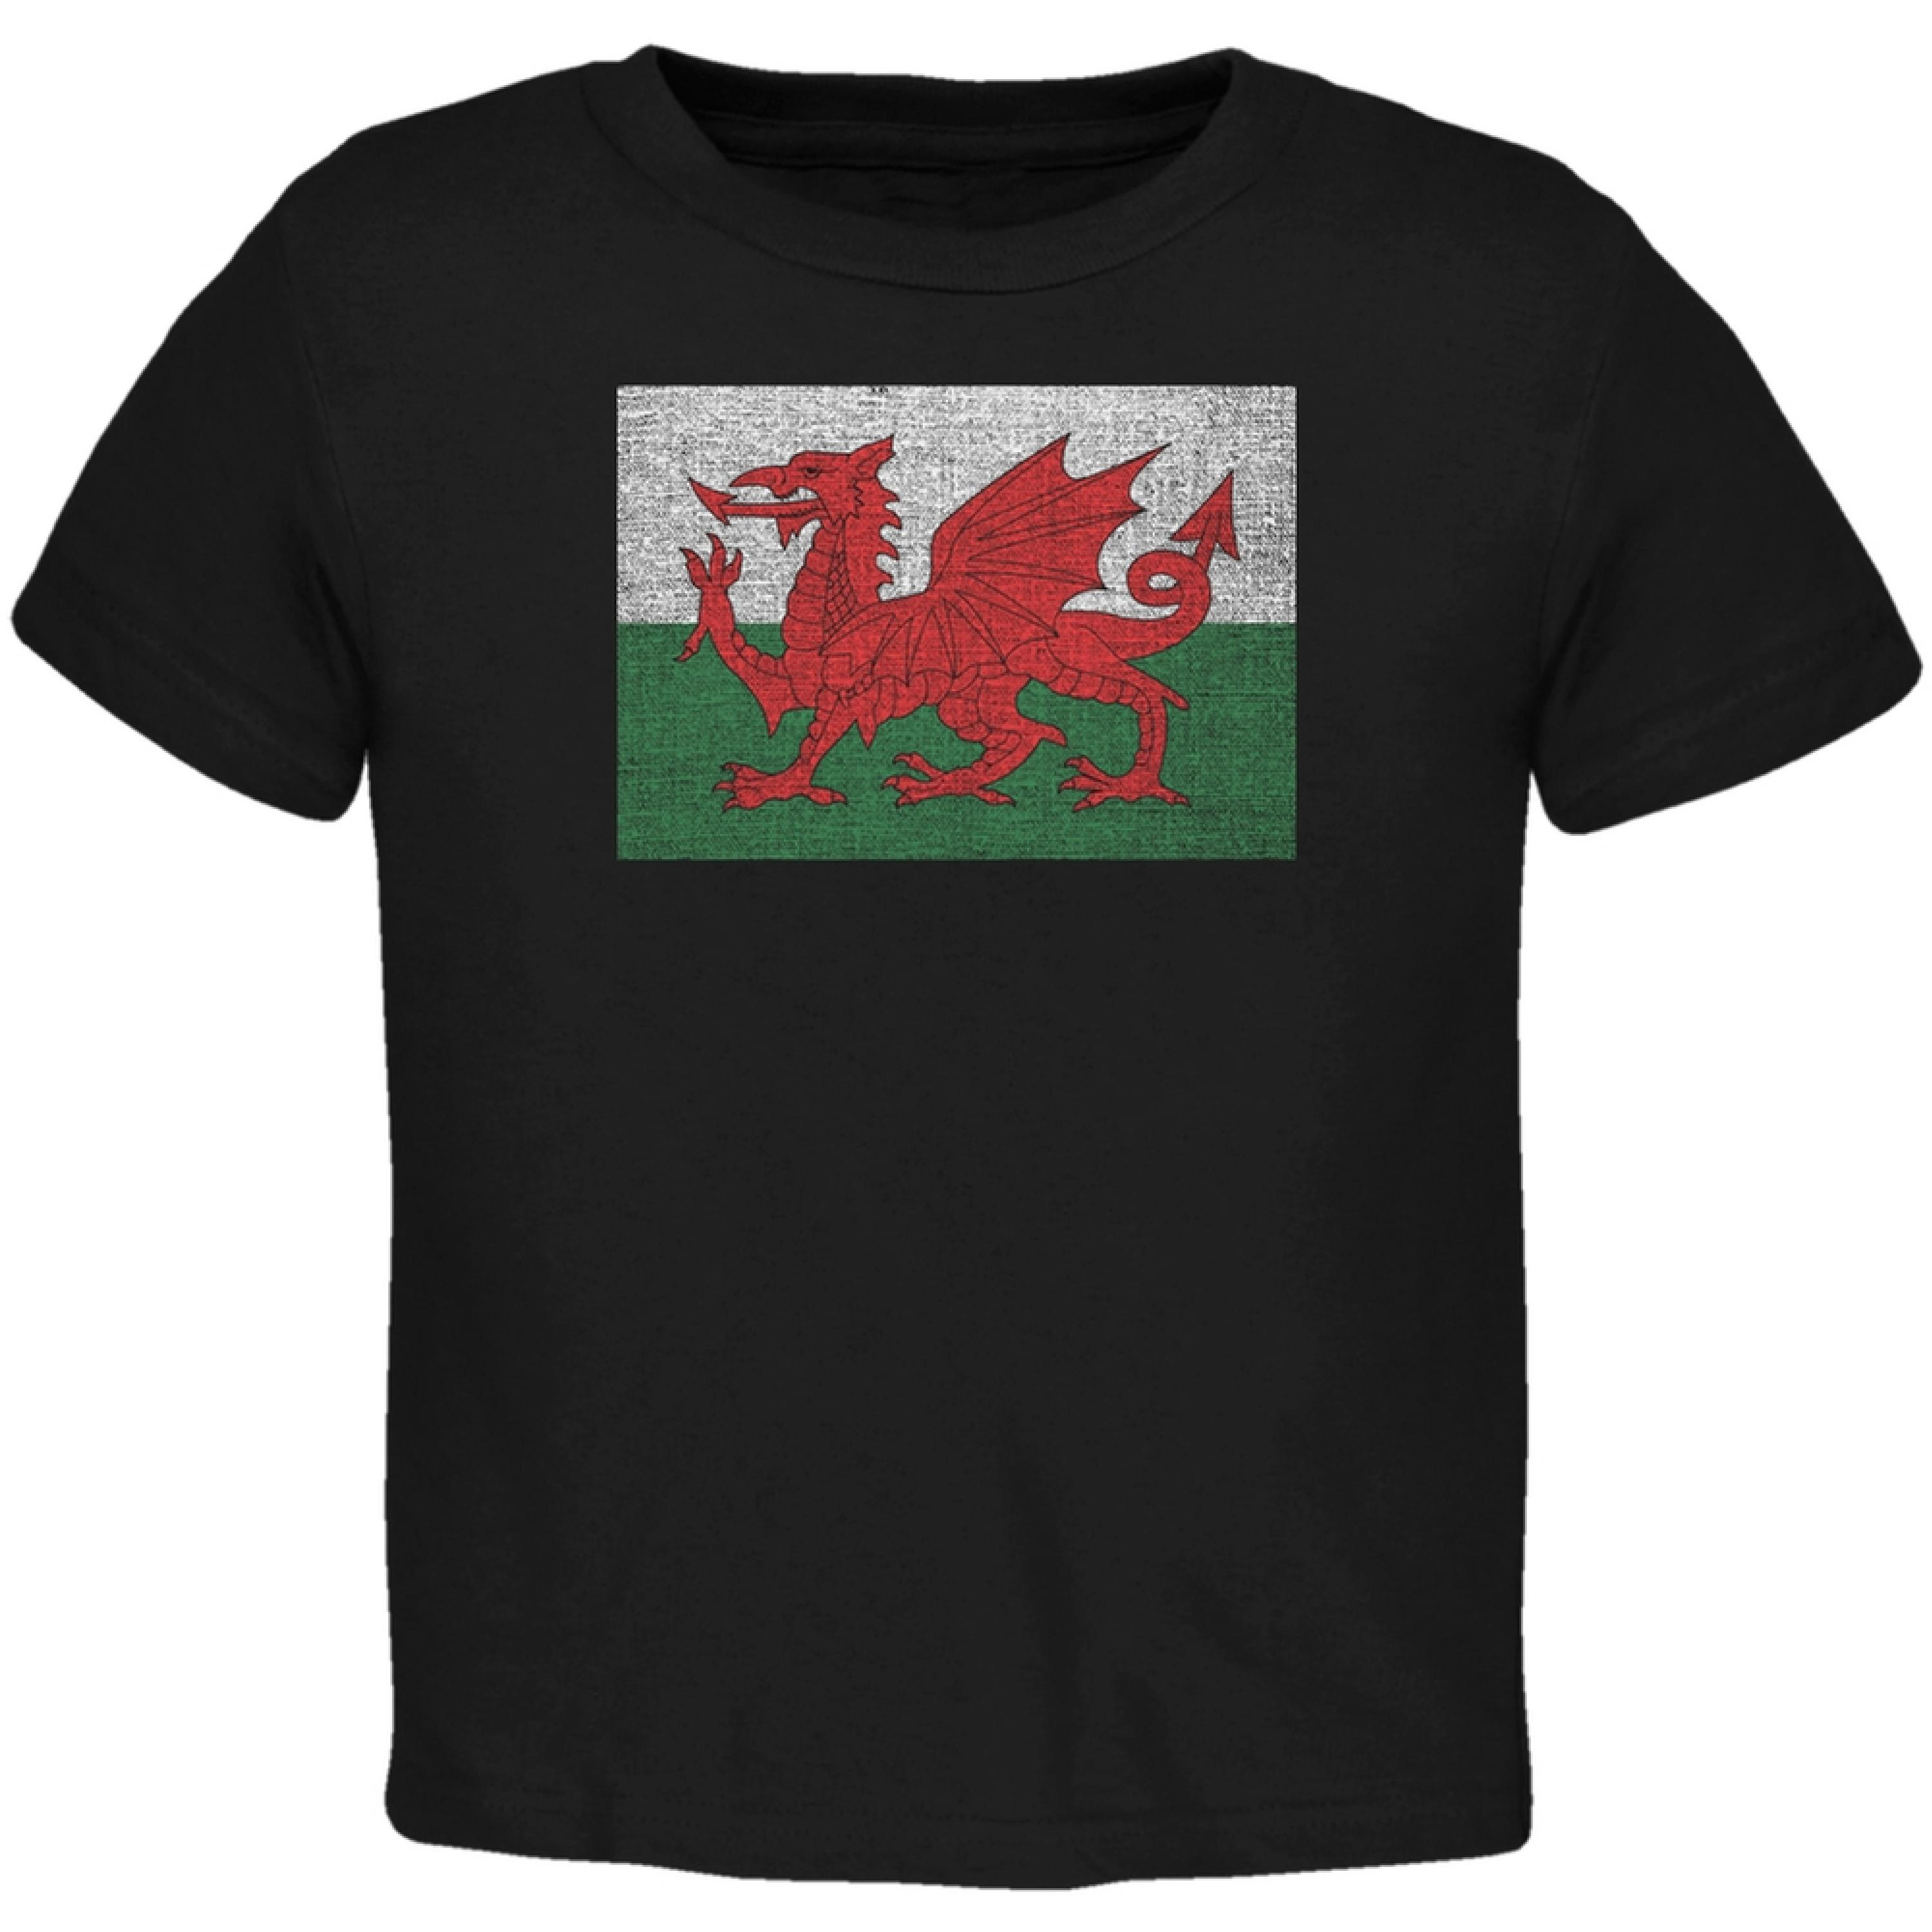 Welsh Flag Distressed Black Toddler T-Shirt